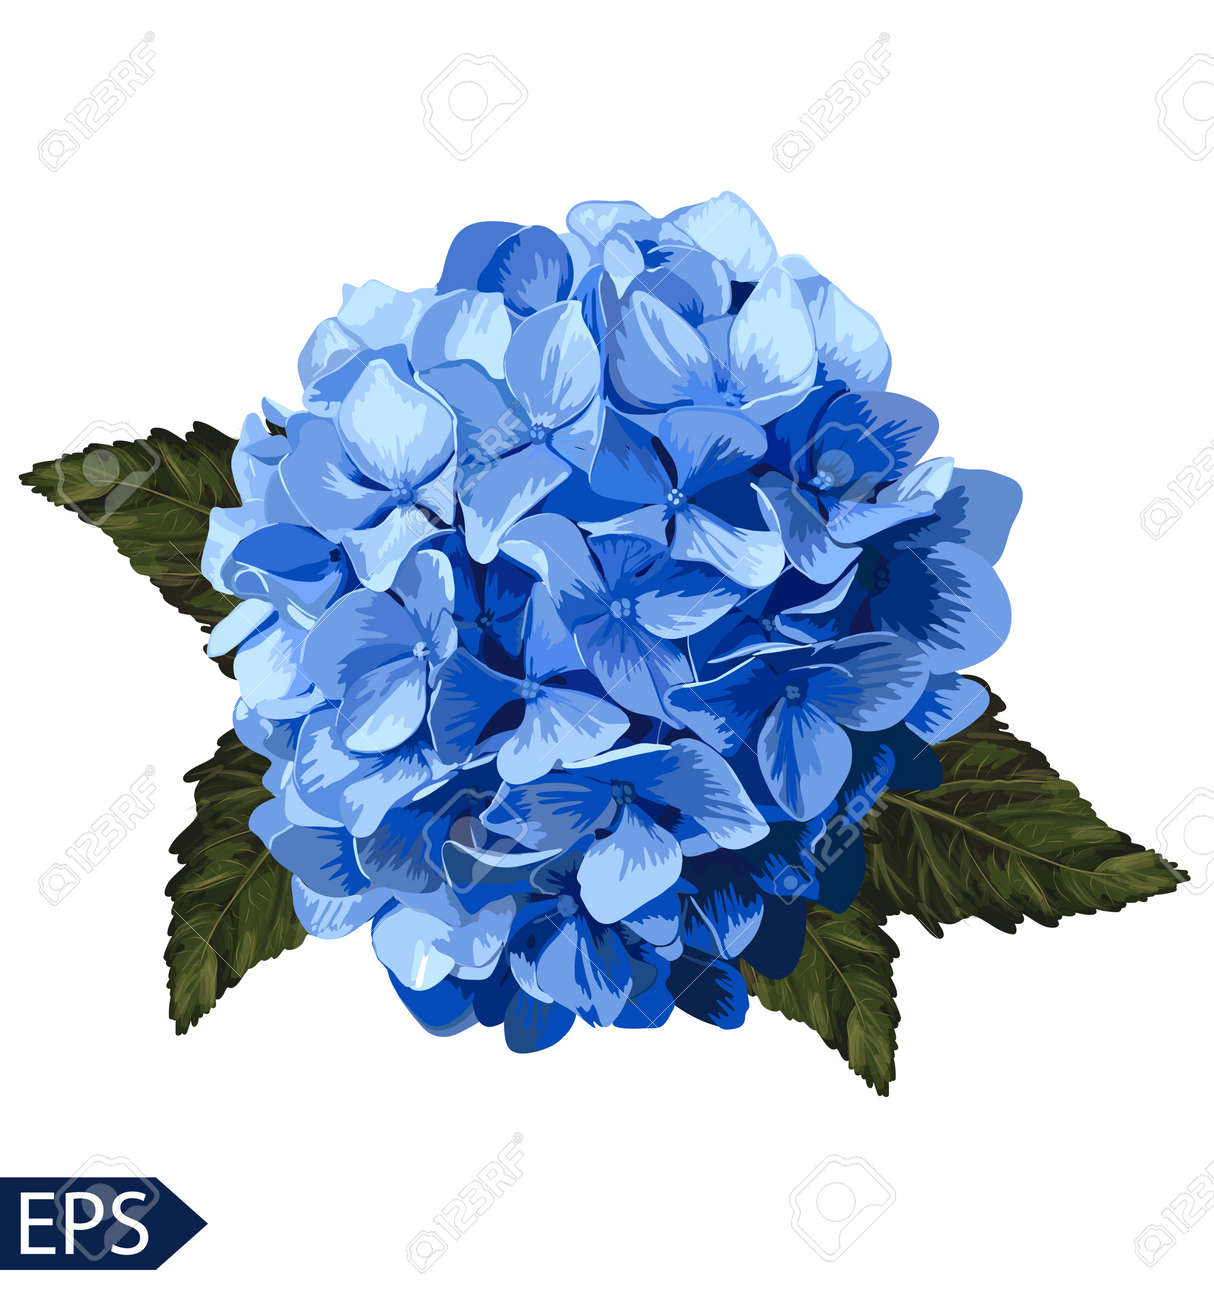 6 355 hydrangea cliparts stock vector and royalty free hydrangea rh 123rf com clipart hydrangea flower hydrangea clipart borders